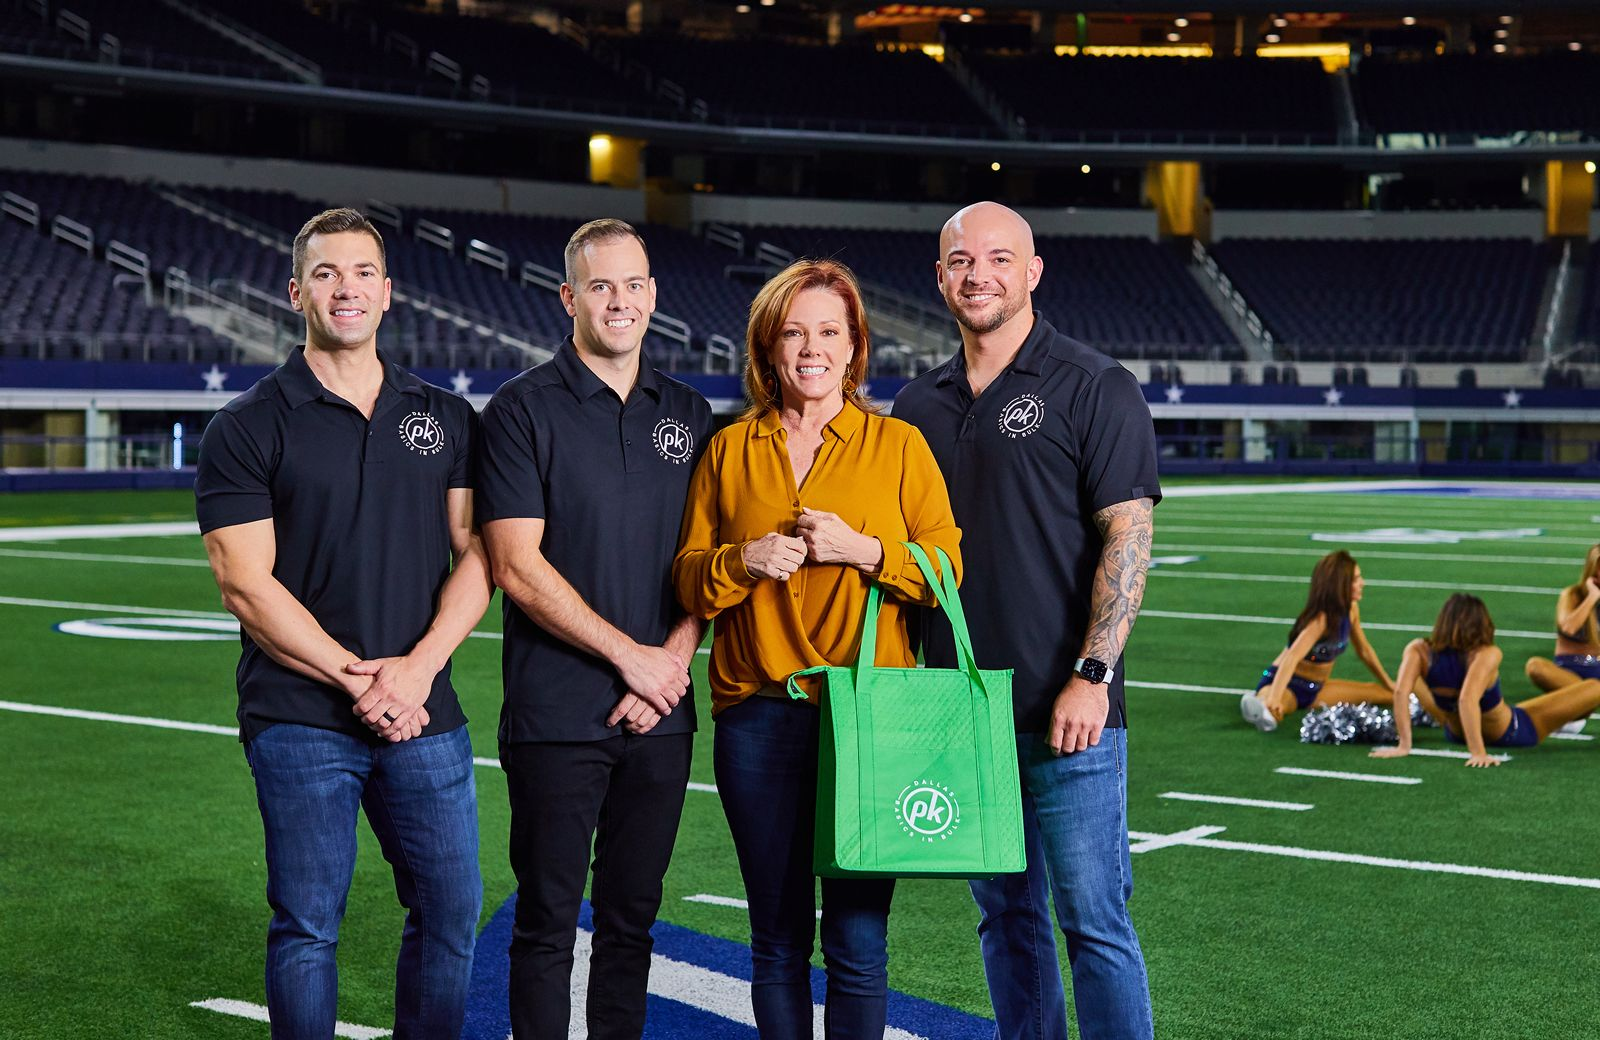 Joe Shaw, Nick Corso, Kelli Finglass and Kyle Clark